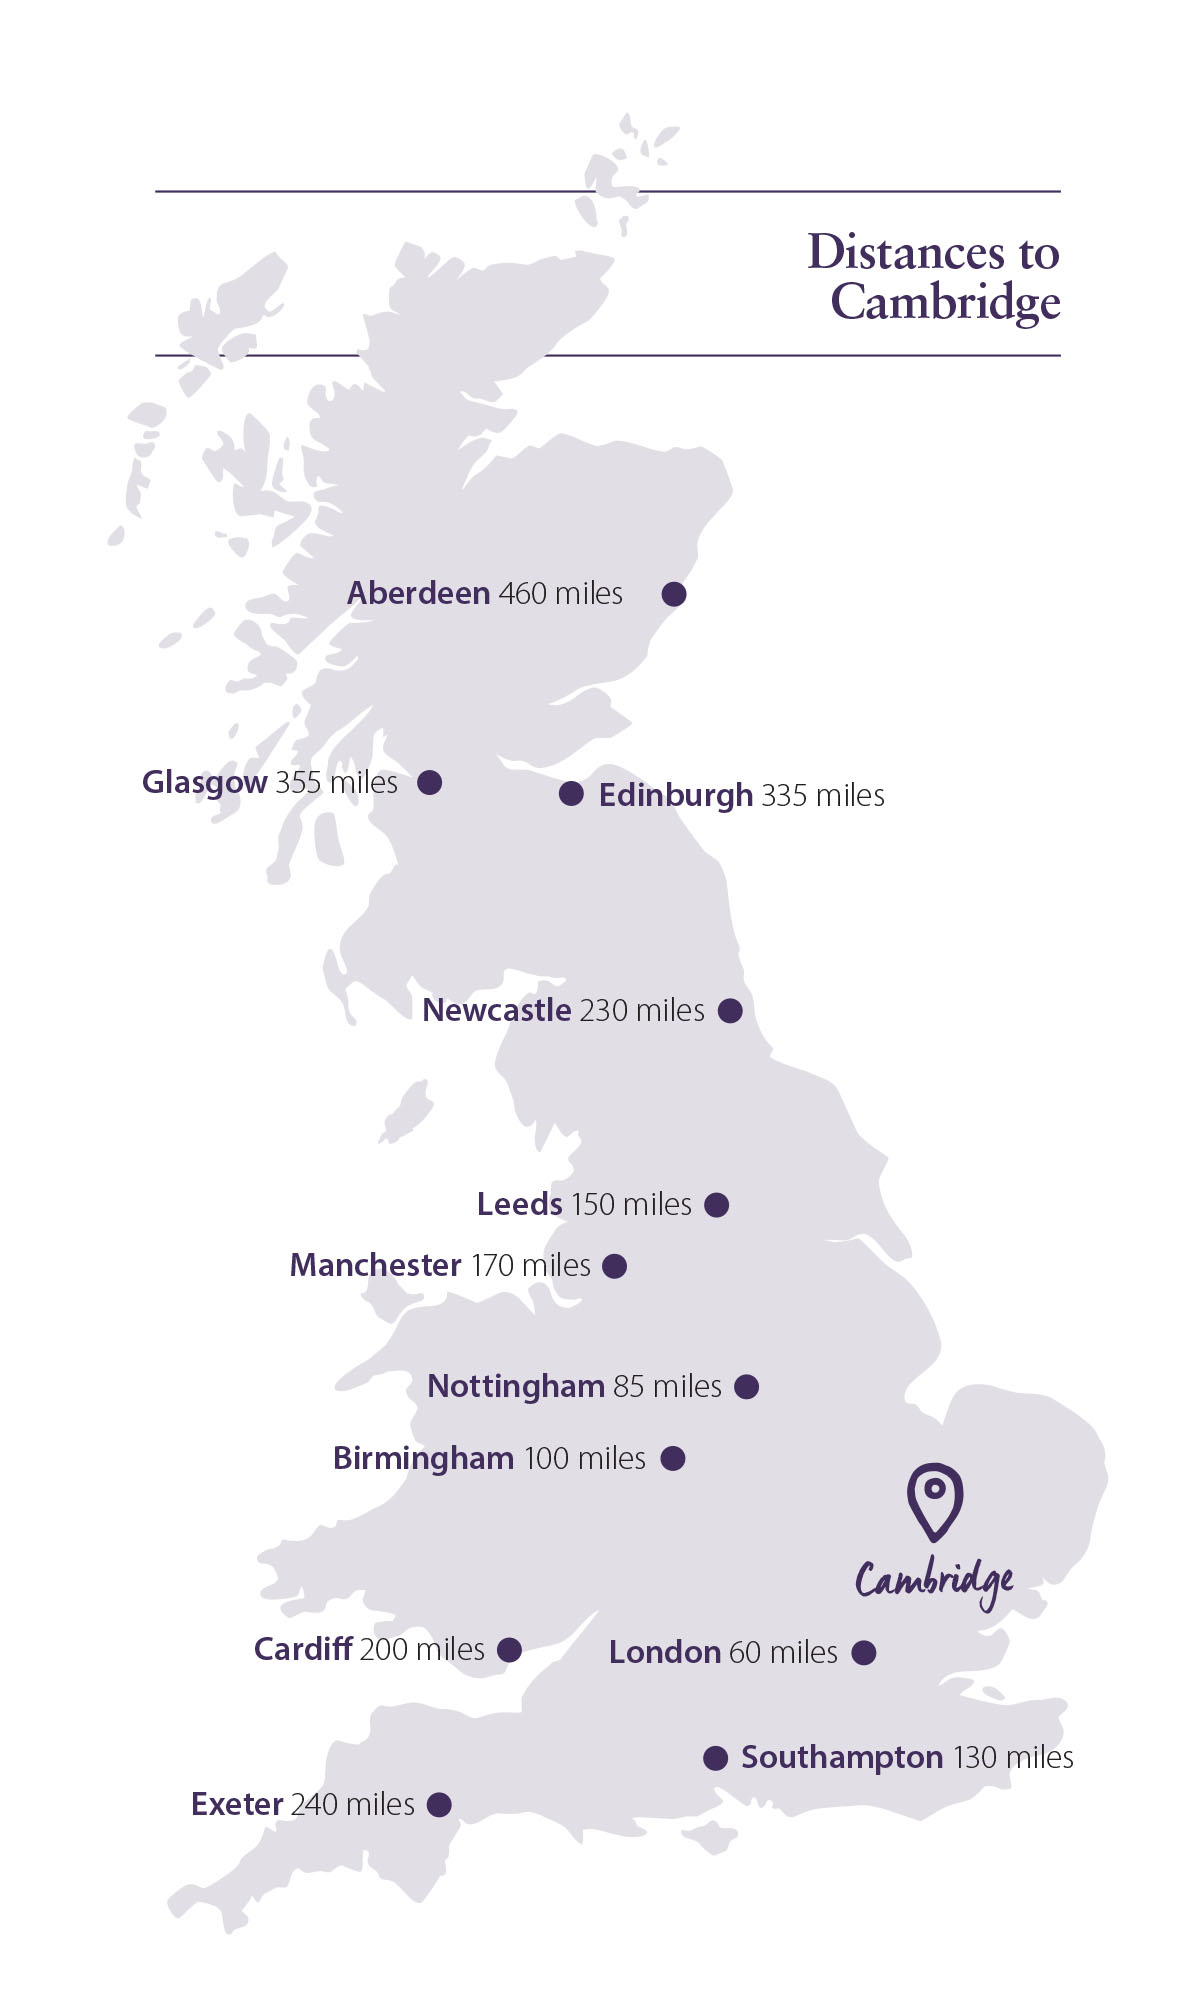 UK map showing distances to Cambridge